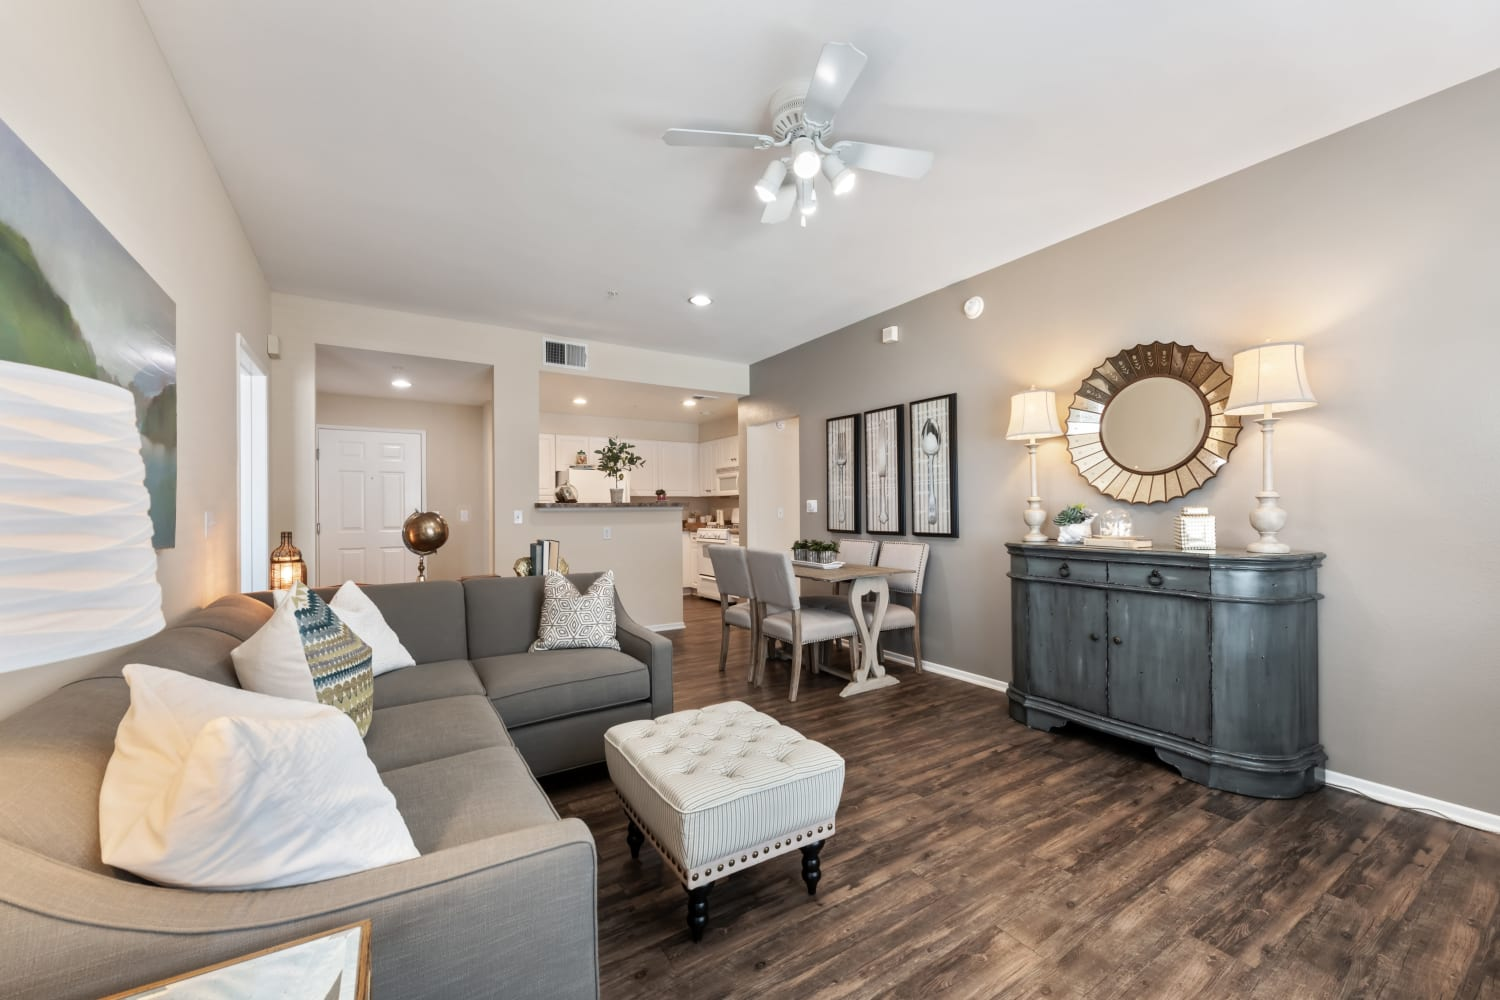 The Village on 5th in Rancho Cucamonga, California offers a living room